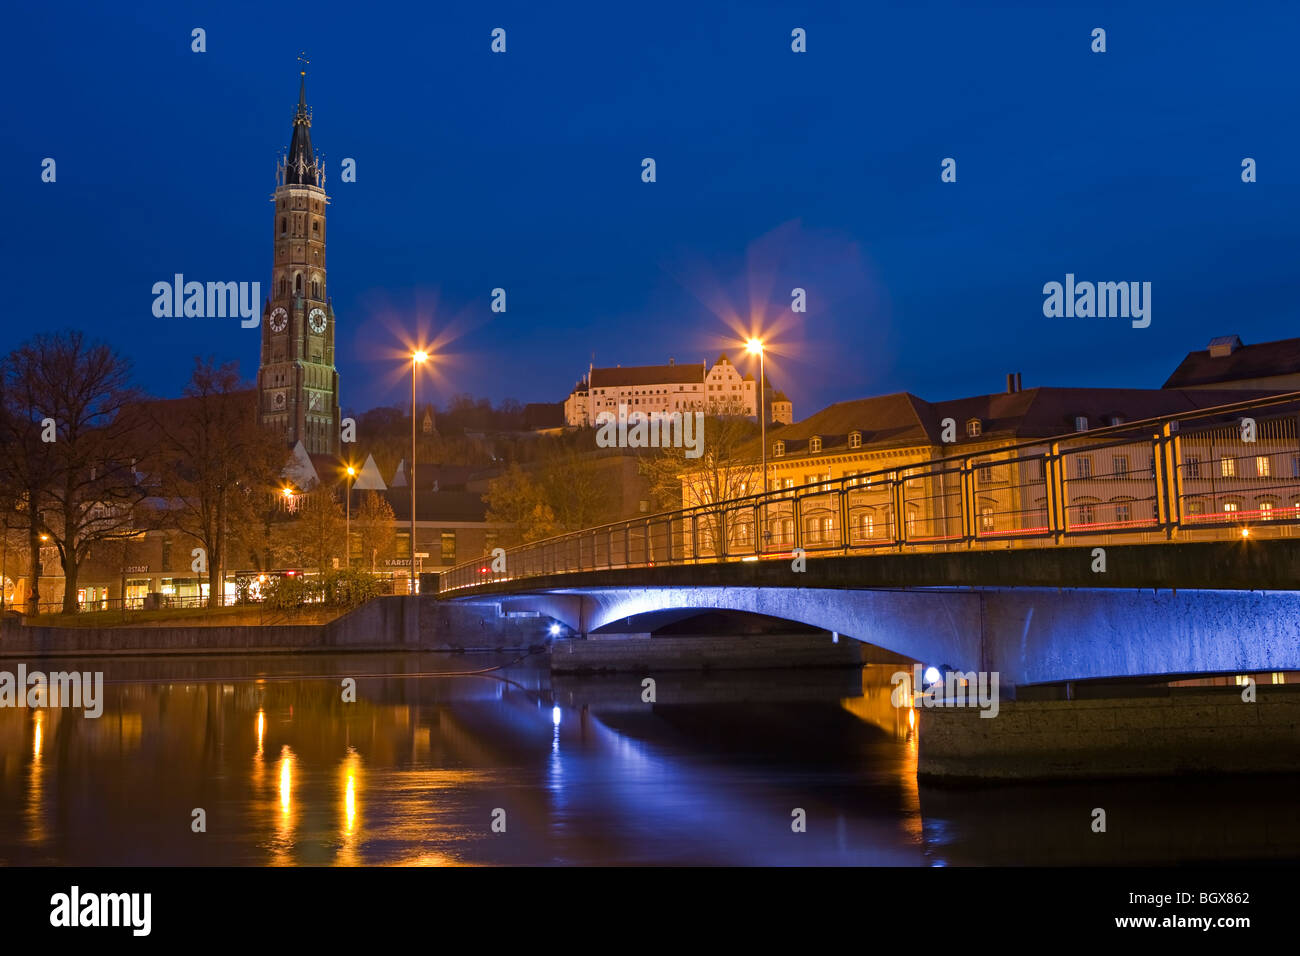 view at landshut at the isar river stockfotos view at landshut at the isar river bilder alamy. Black Bedroom Furniture Sets. Home Design Ideas